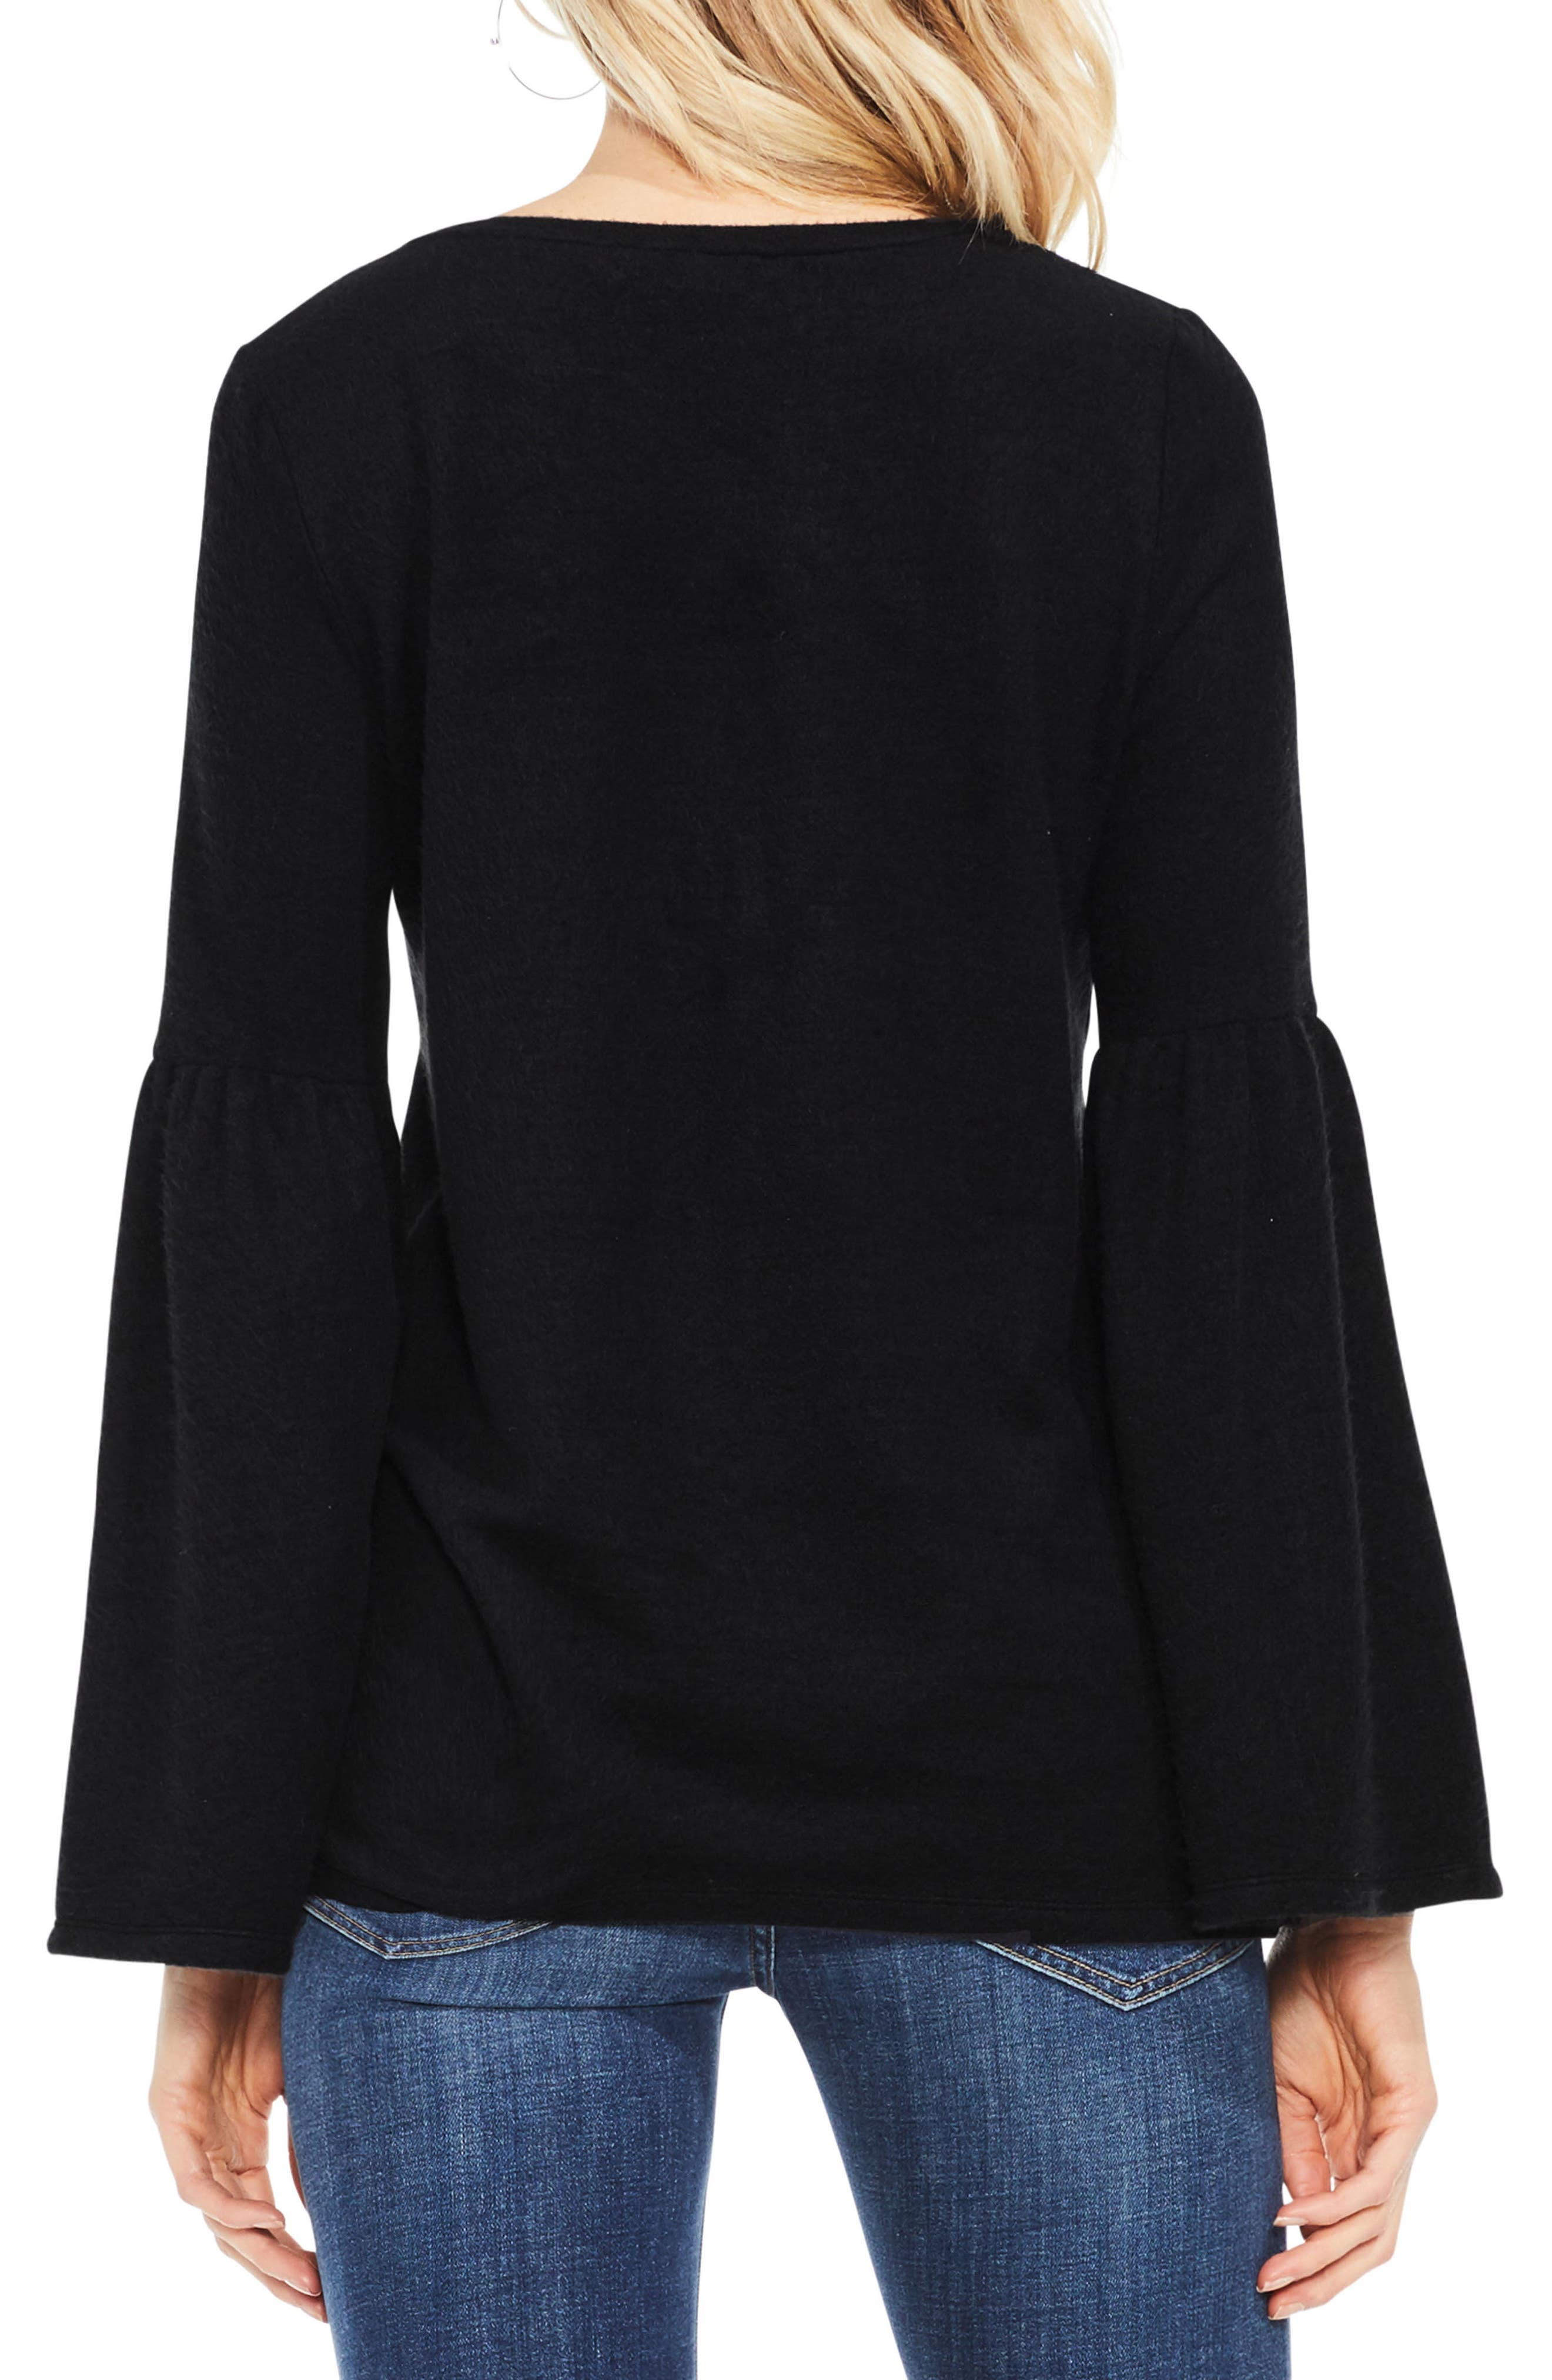 Vince Camuto Ruched Bell Sleeve Fleece Top,                             Alternate thumbnail 2, color,                             006